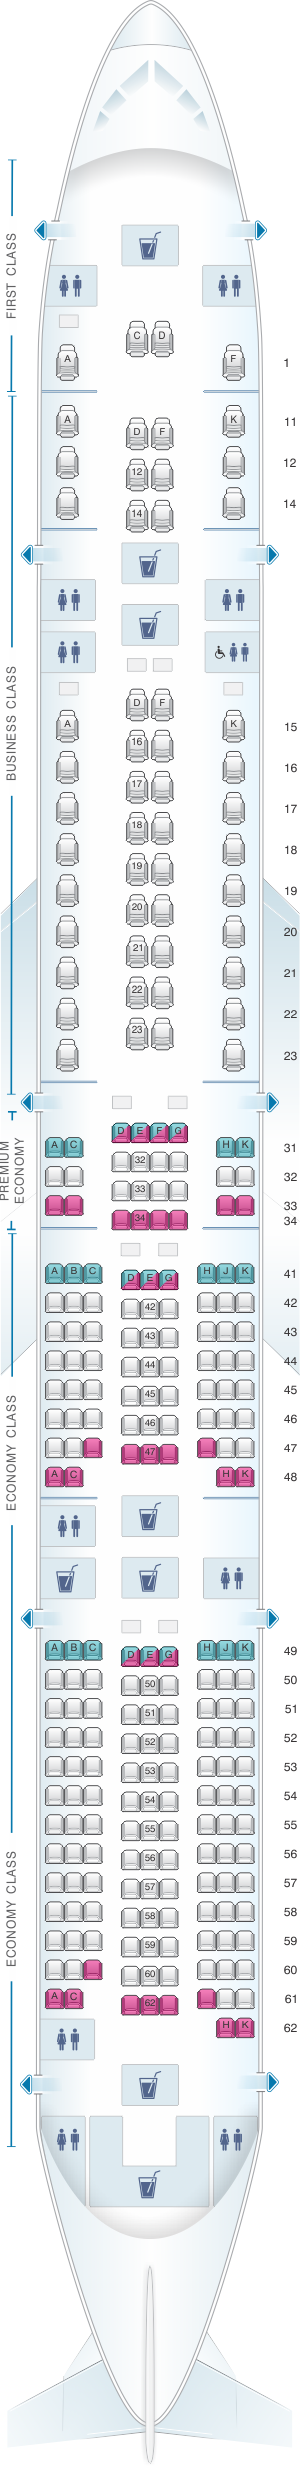 Seat map for Singapore Airlines Boeing B777 300ER four class